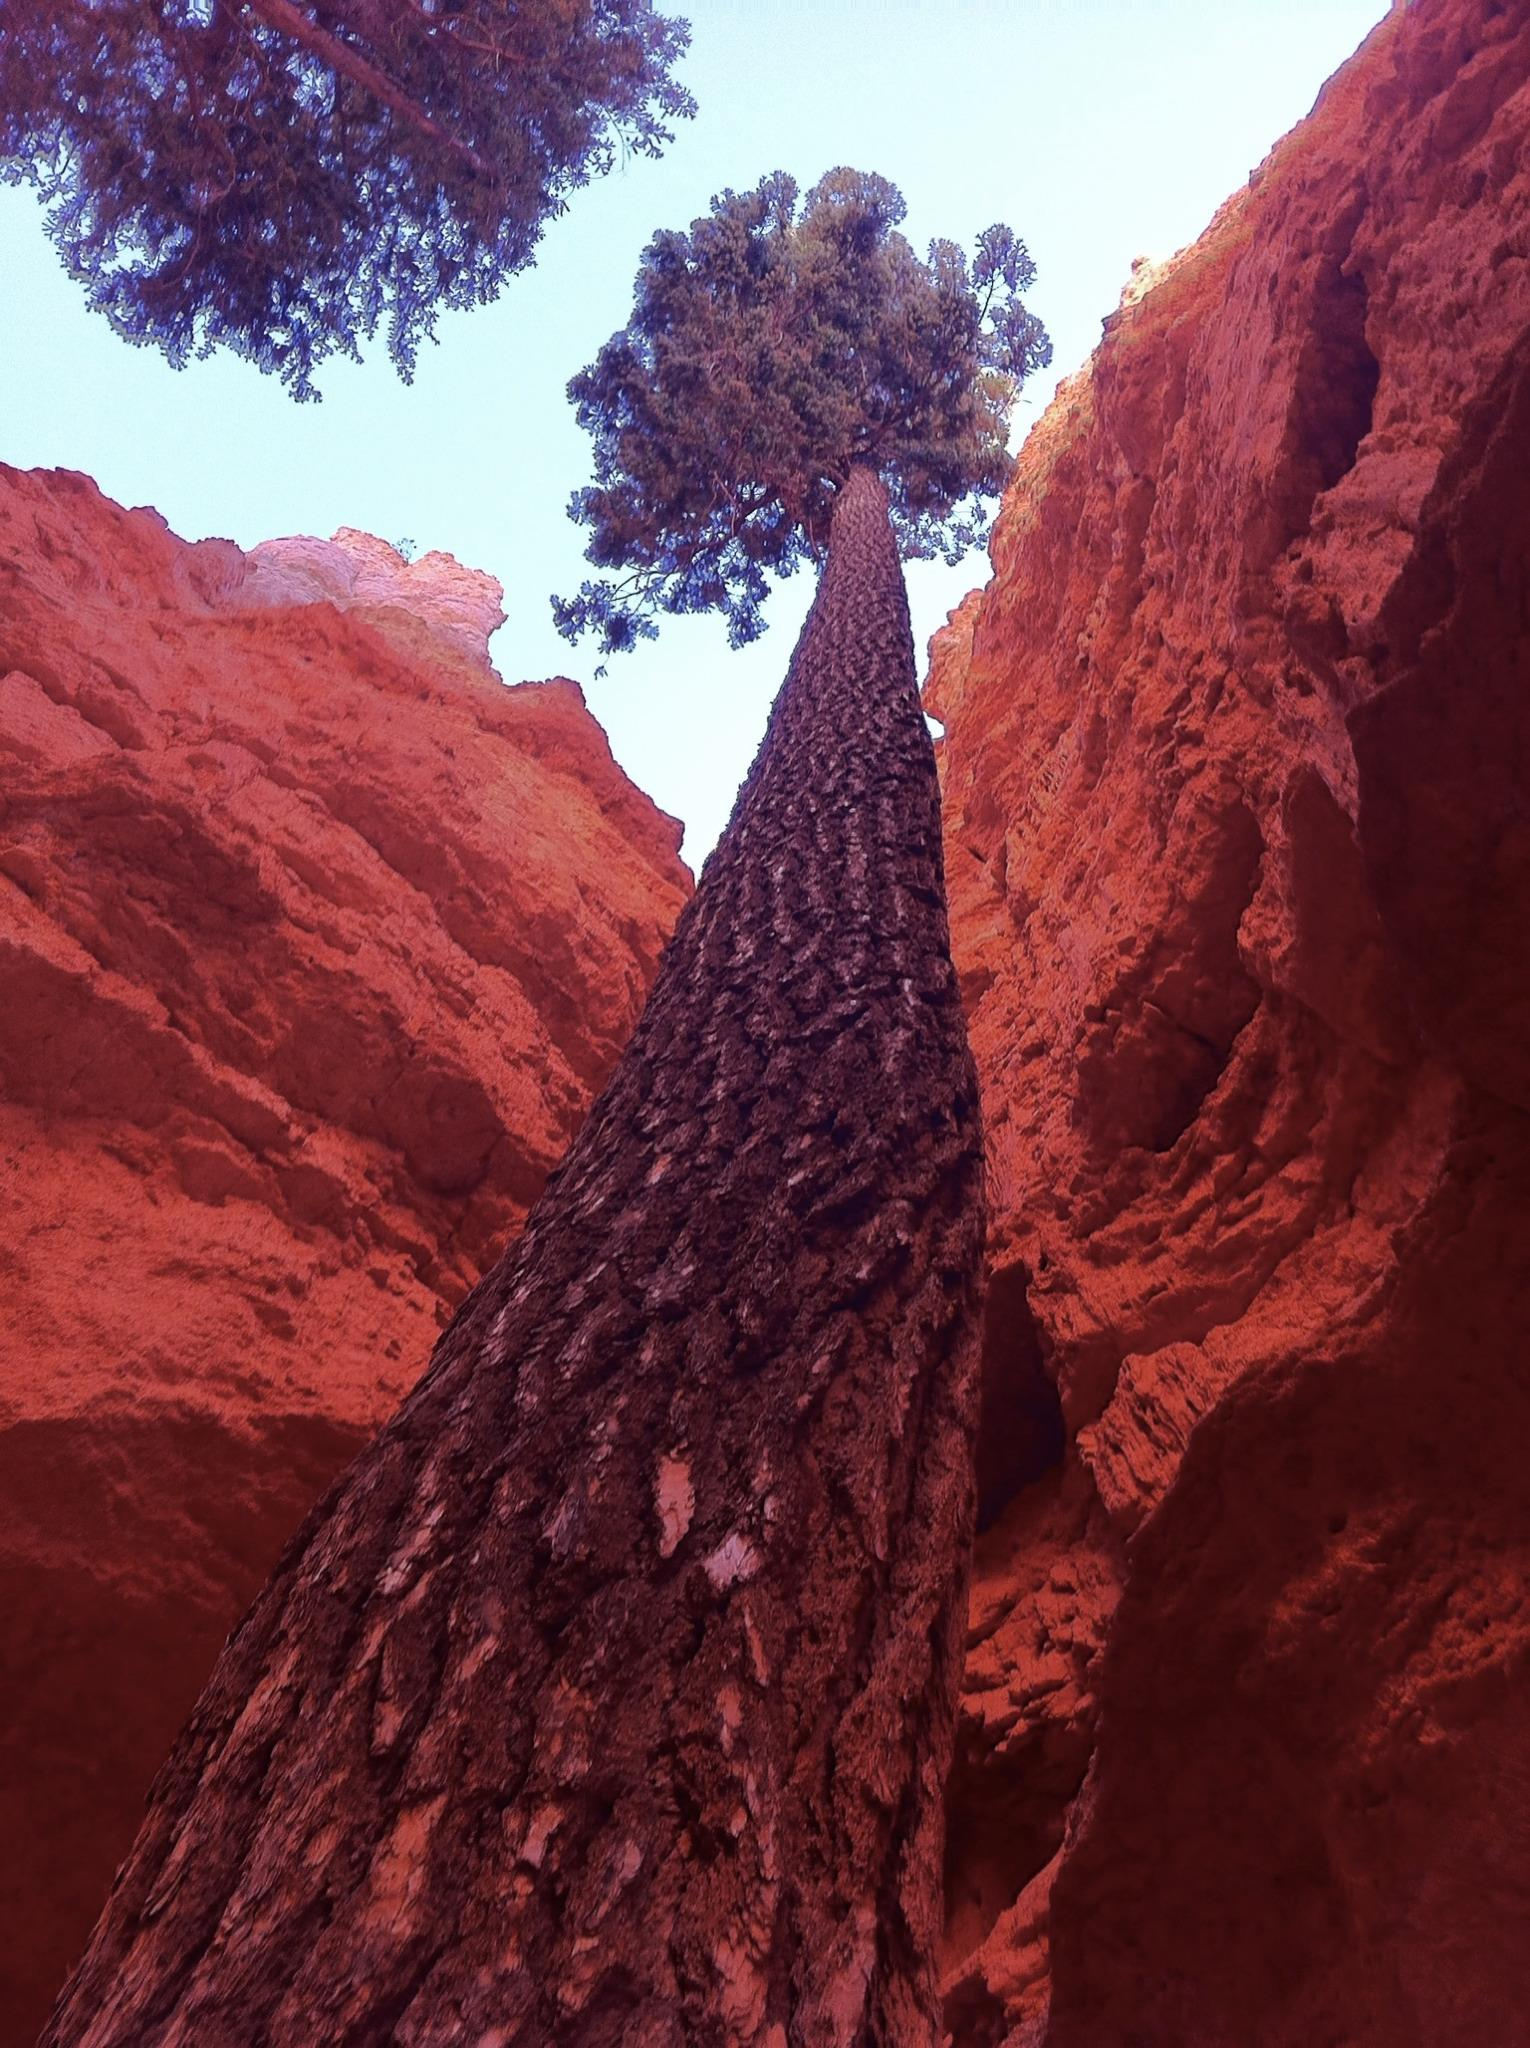 A single tree rooted at the base of the canyon